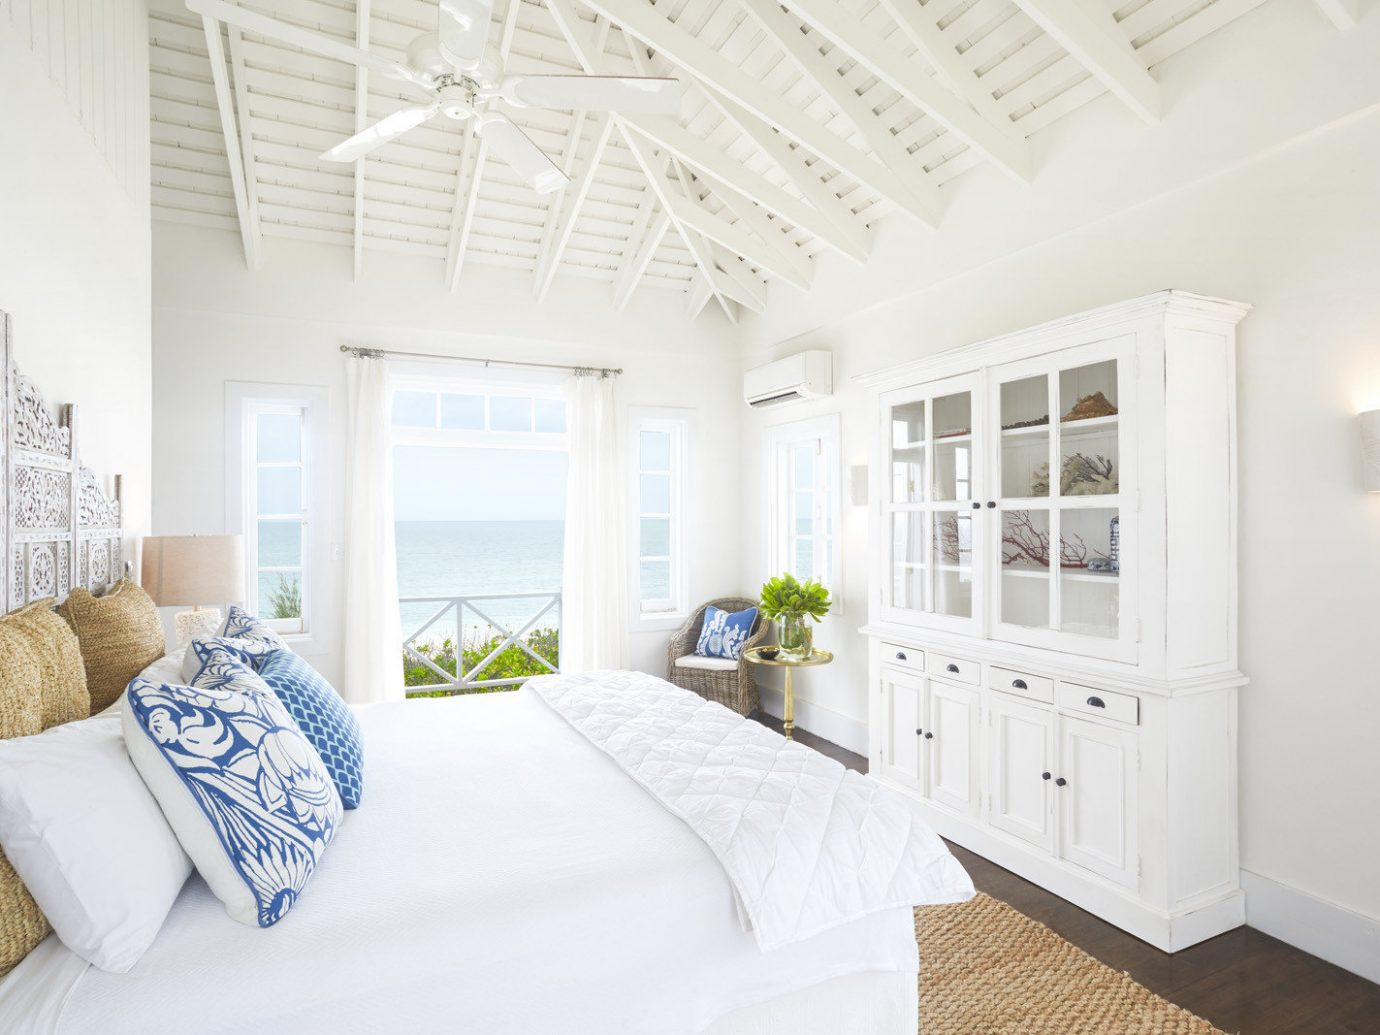 Hotels Romance indoor wall window white room Bedroom property living room home estate ceiling real estate interior design floor Design cottage furniture farmhouse apartment decorated